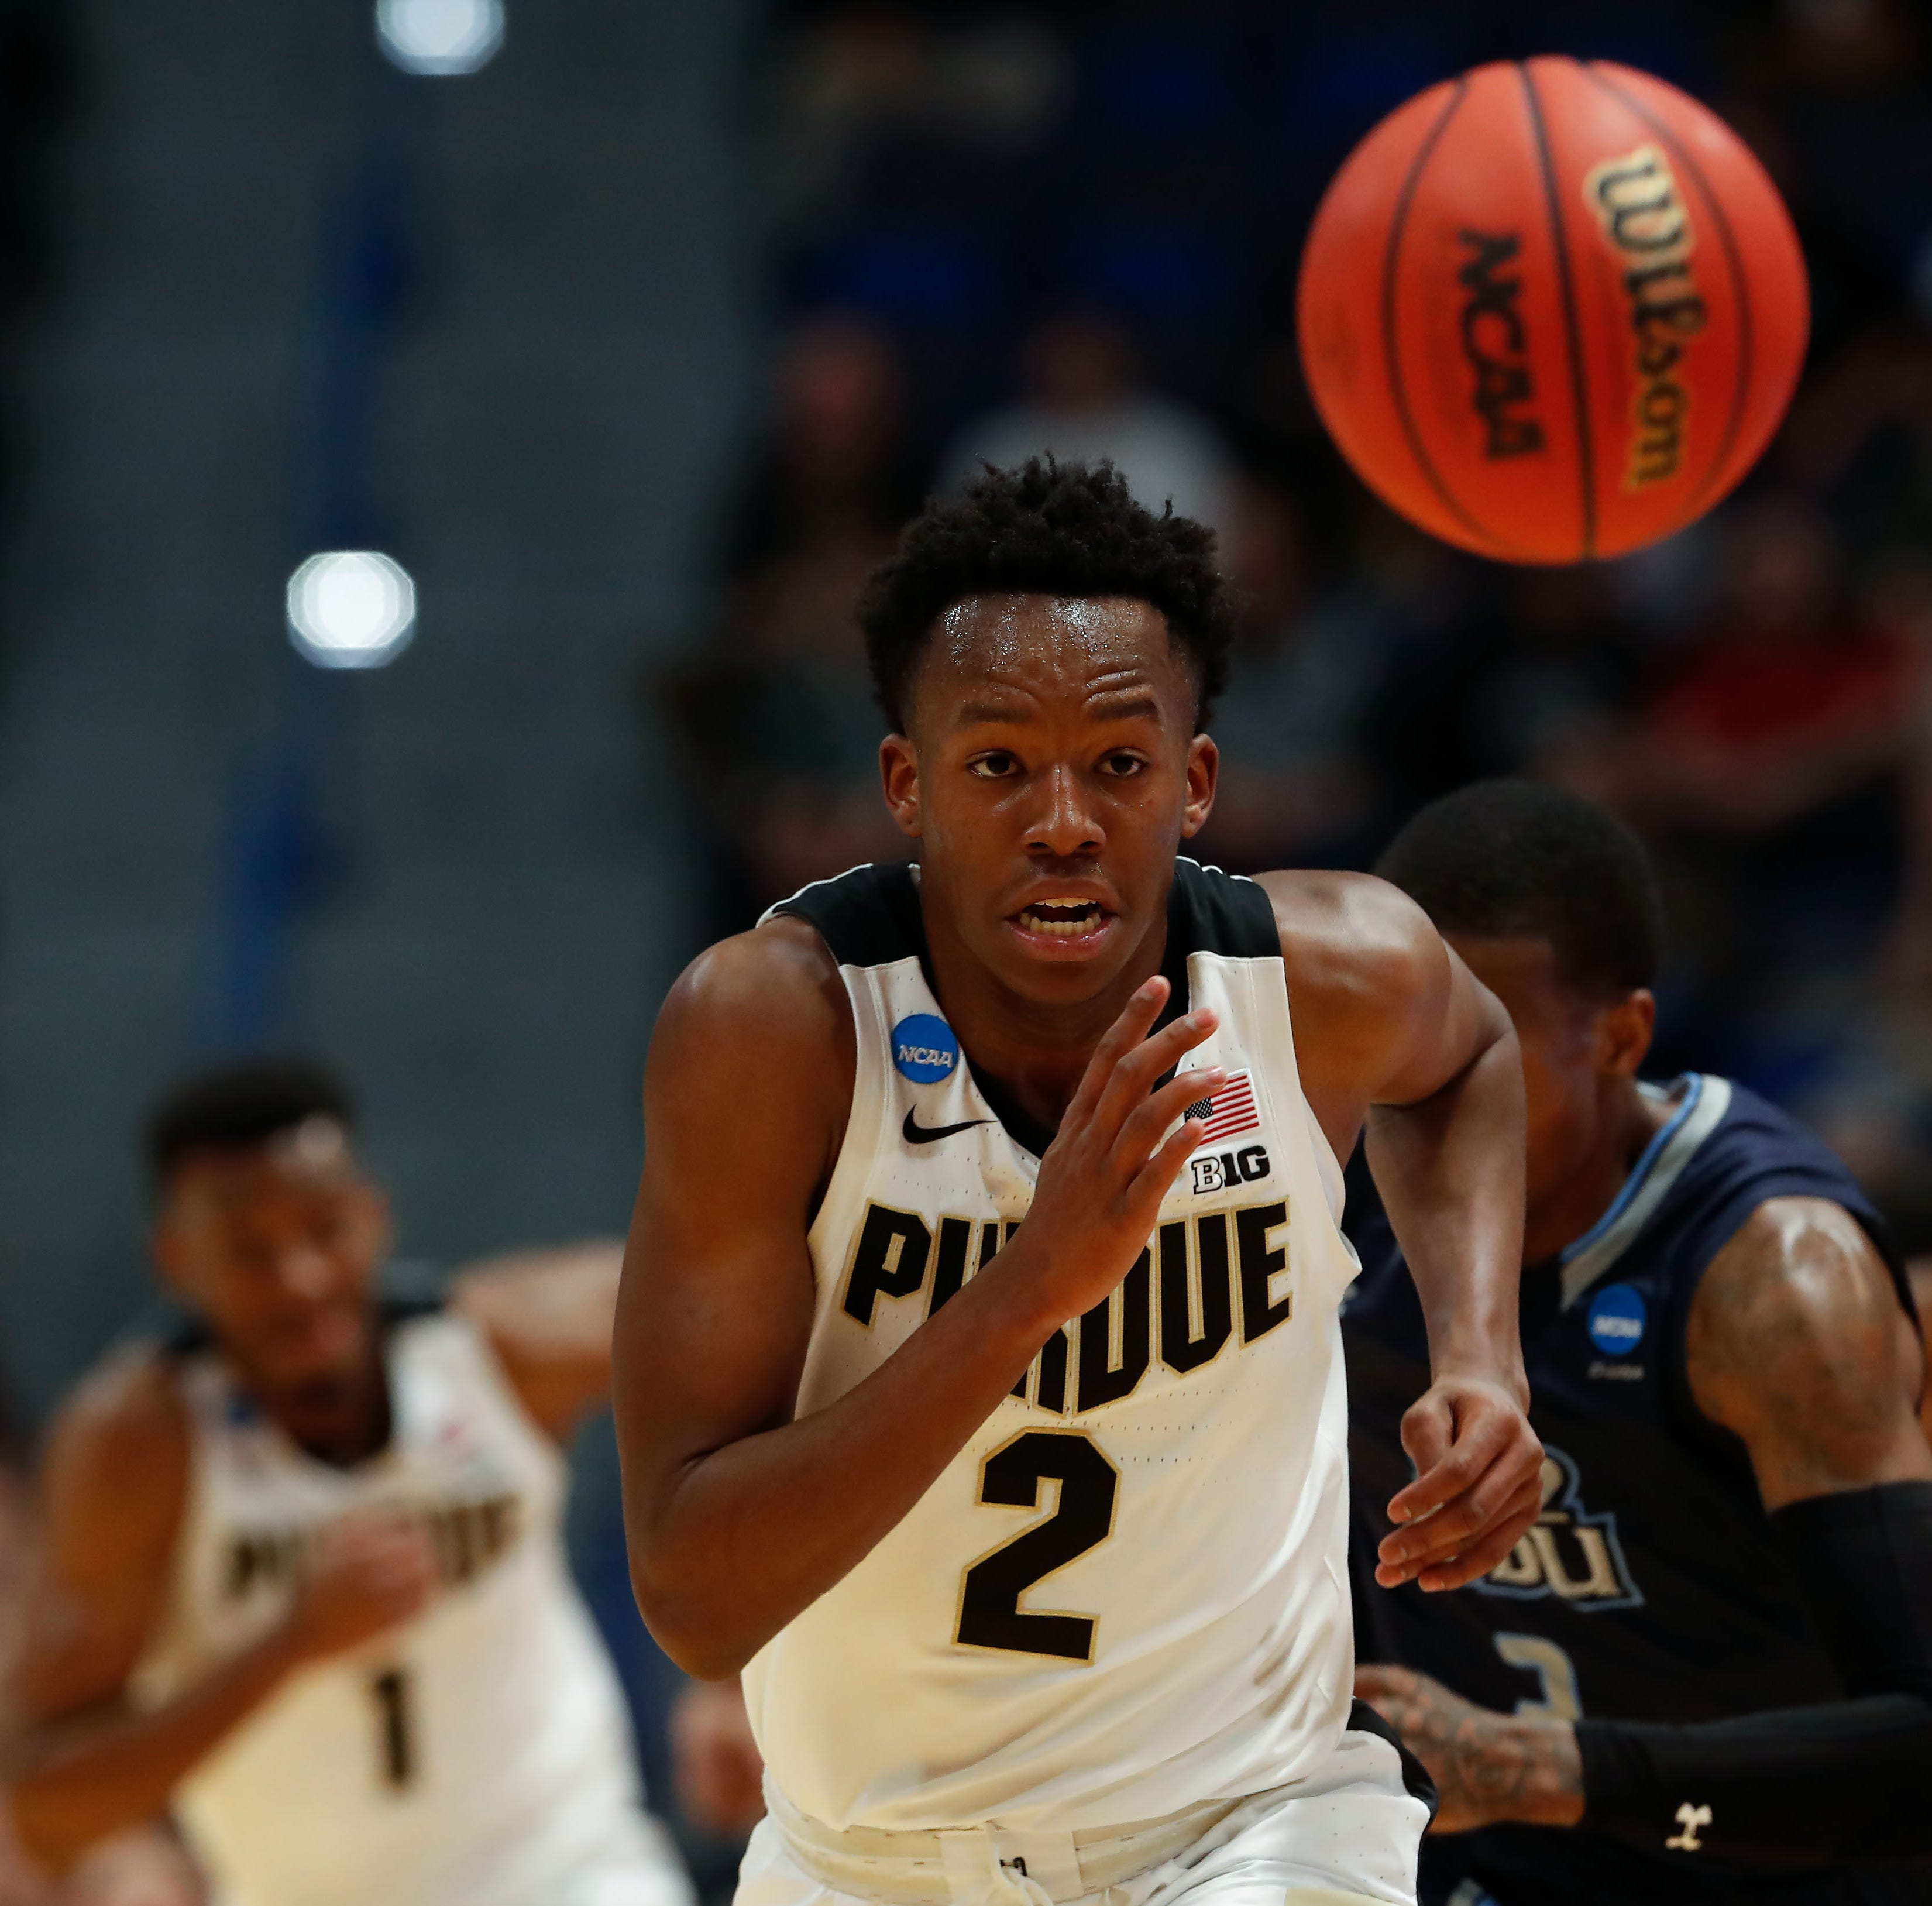 Purdue basketball freshman Eric Hunter answered unexpected call against Old Dominion